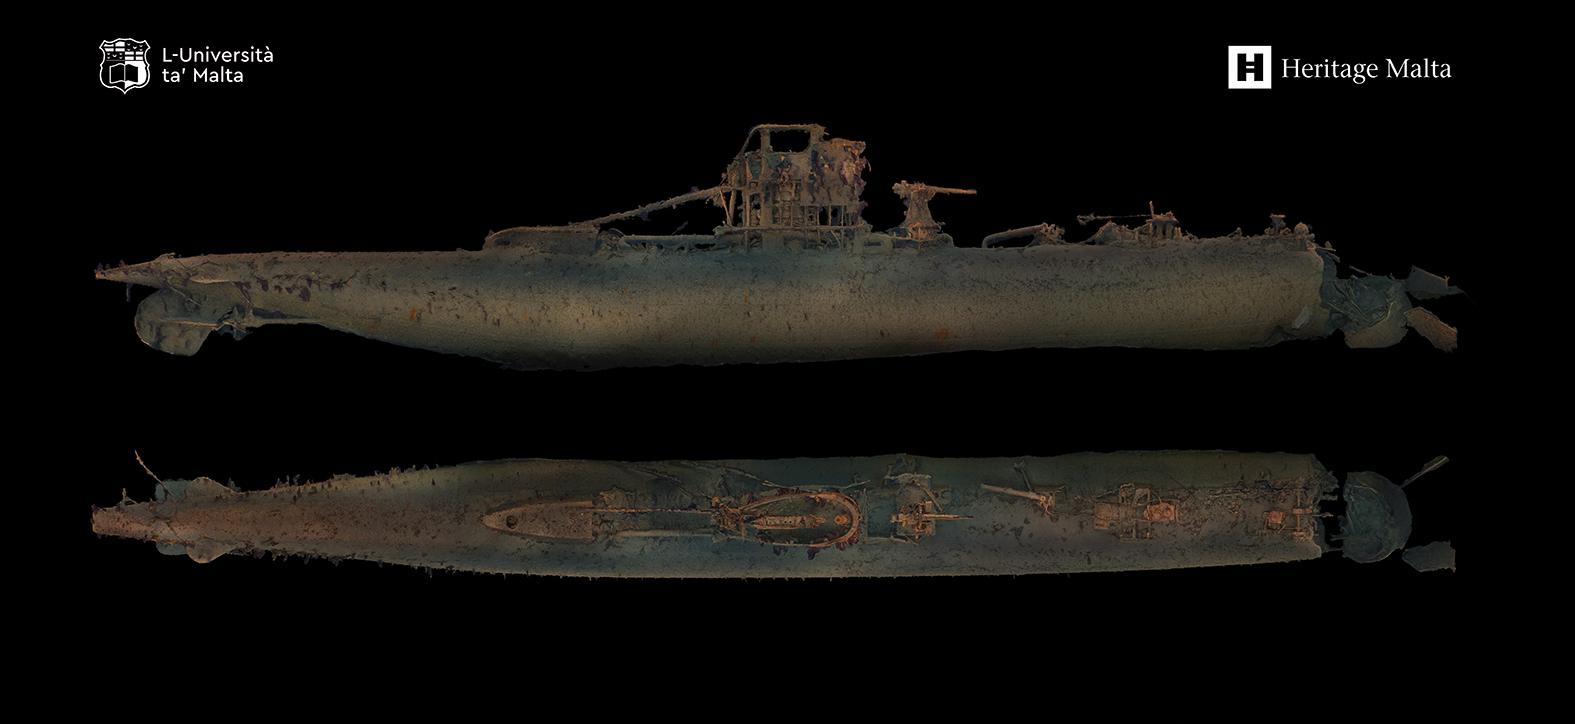 Screen grab from the 3D model produced by the University of Malta and Heritage Malta during the April survey